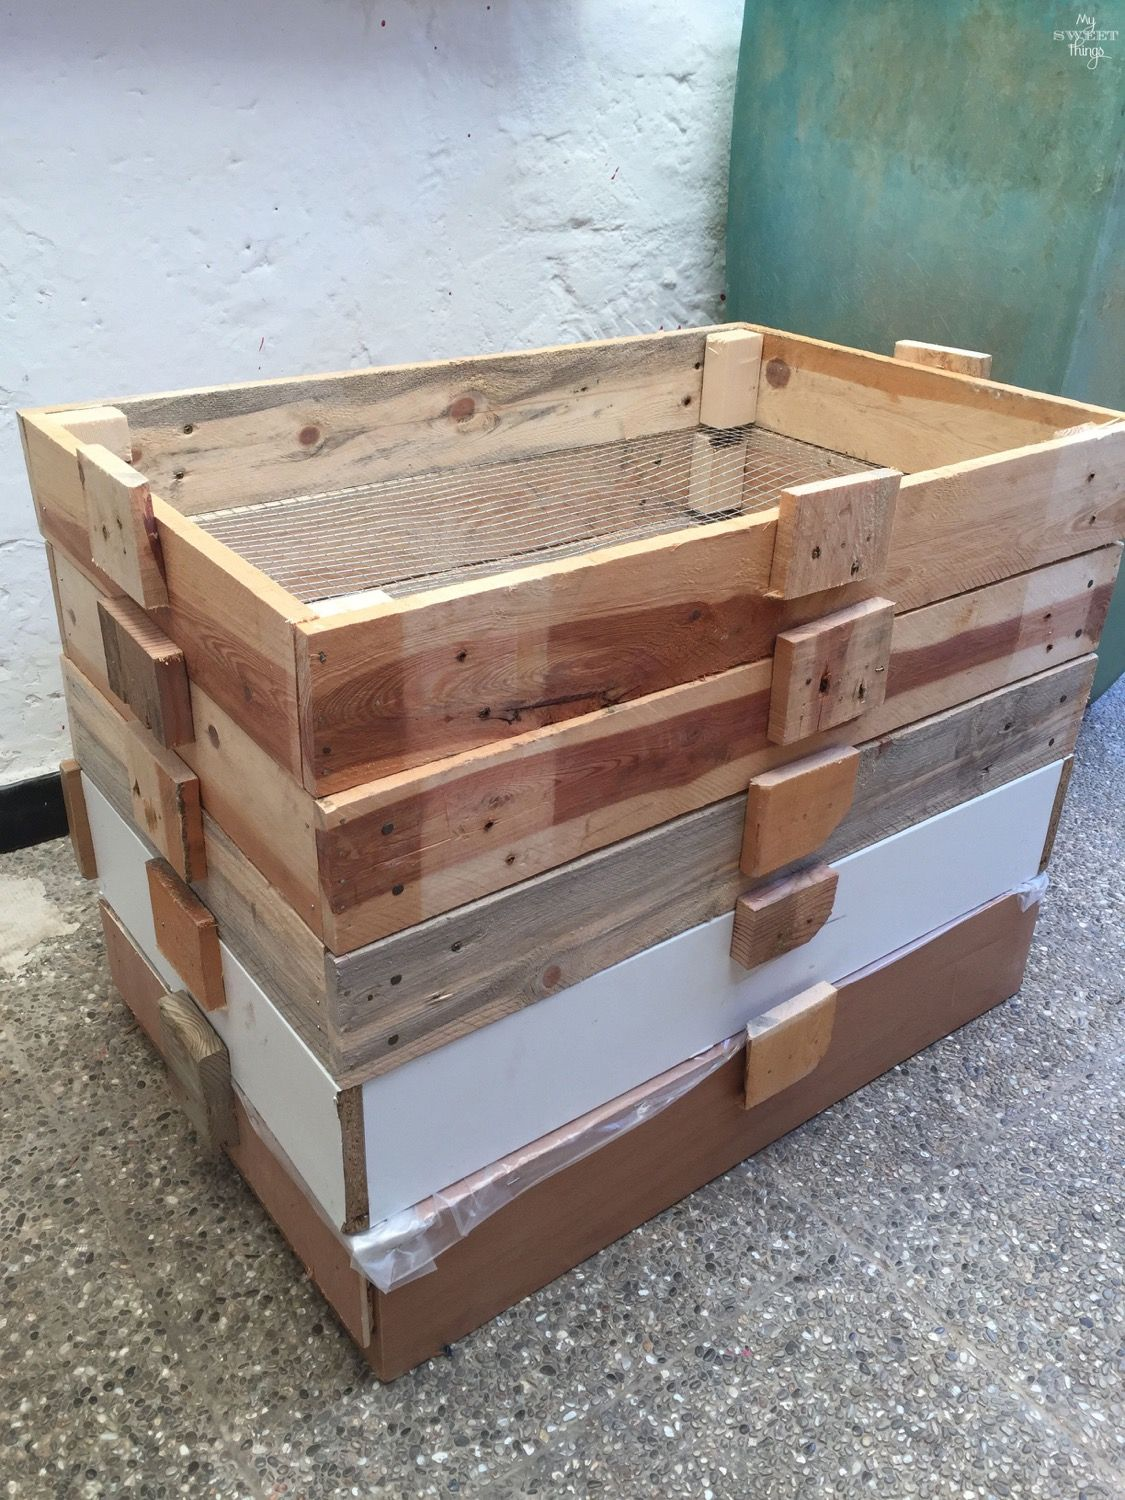 Diy worm compost bin for worm composting